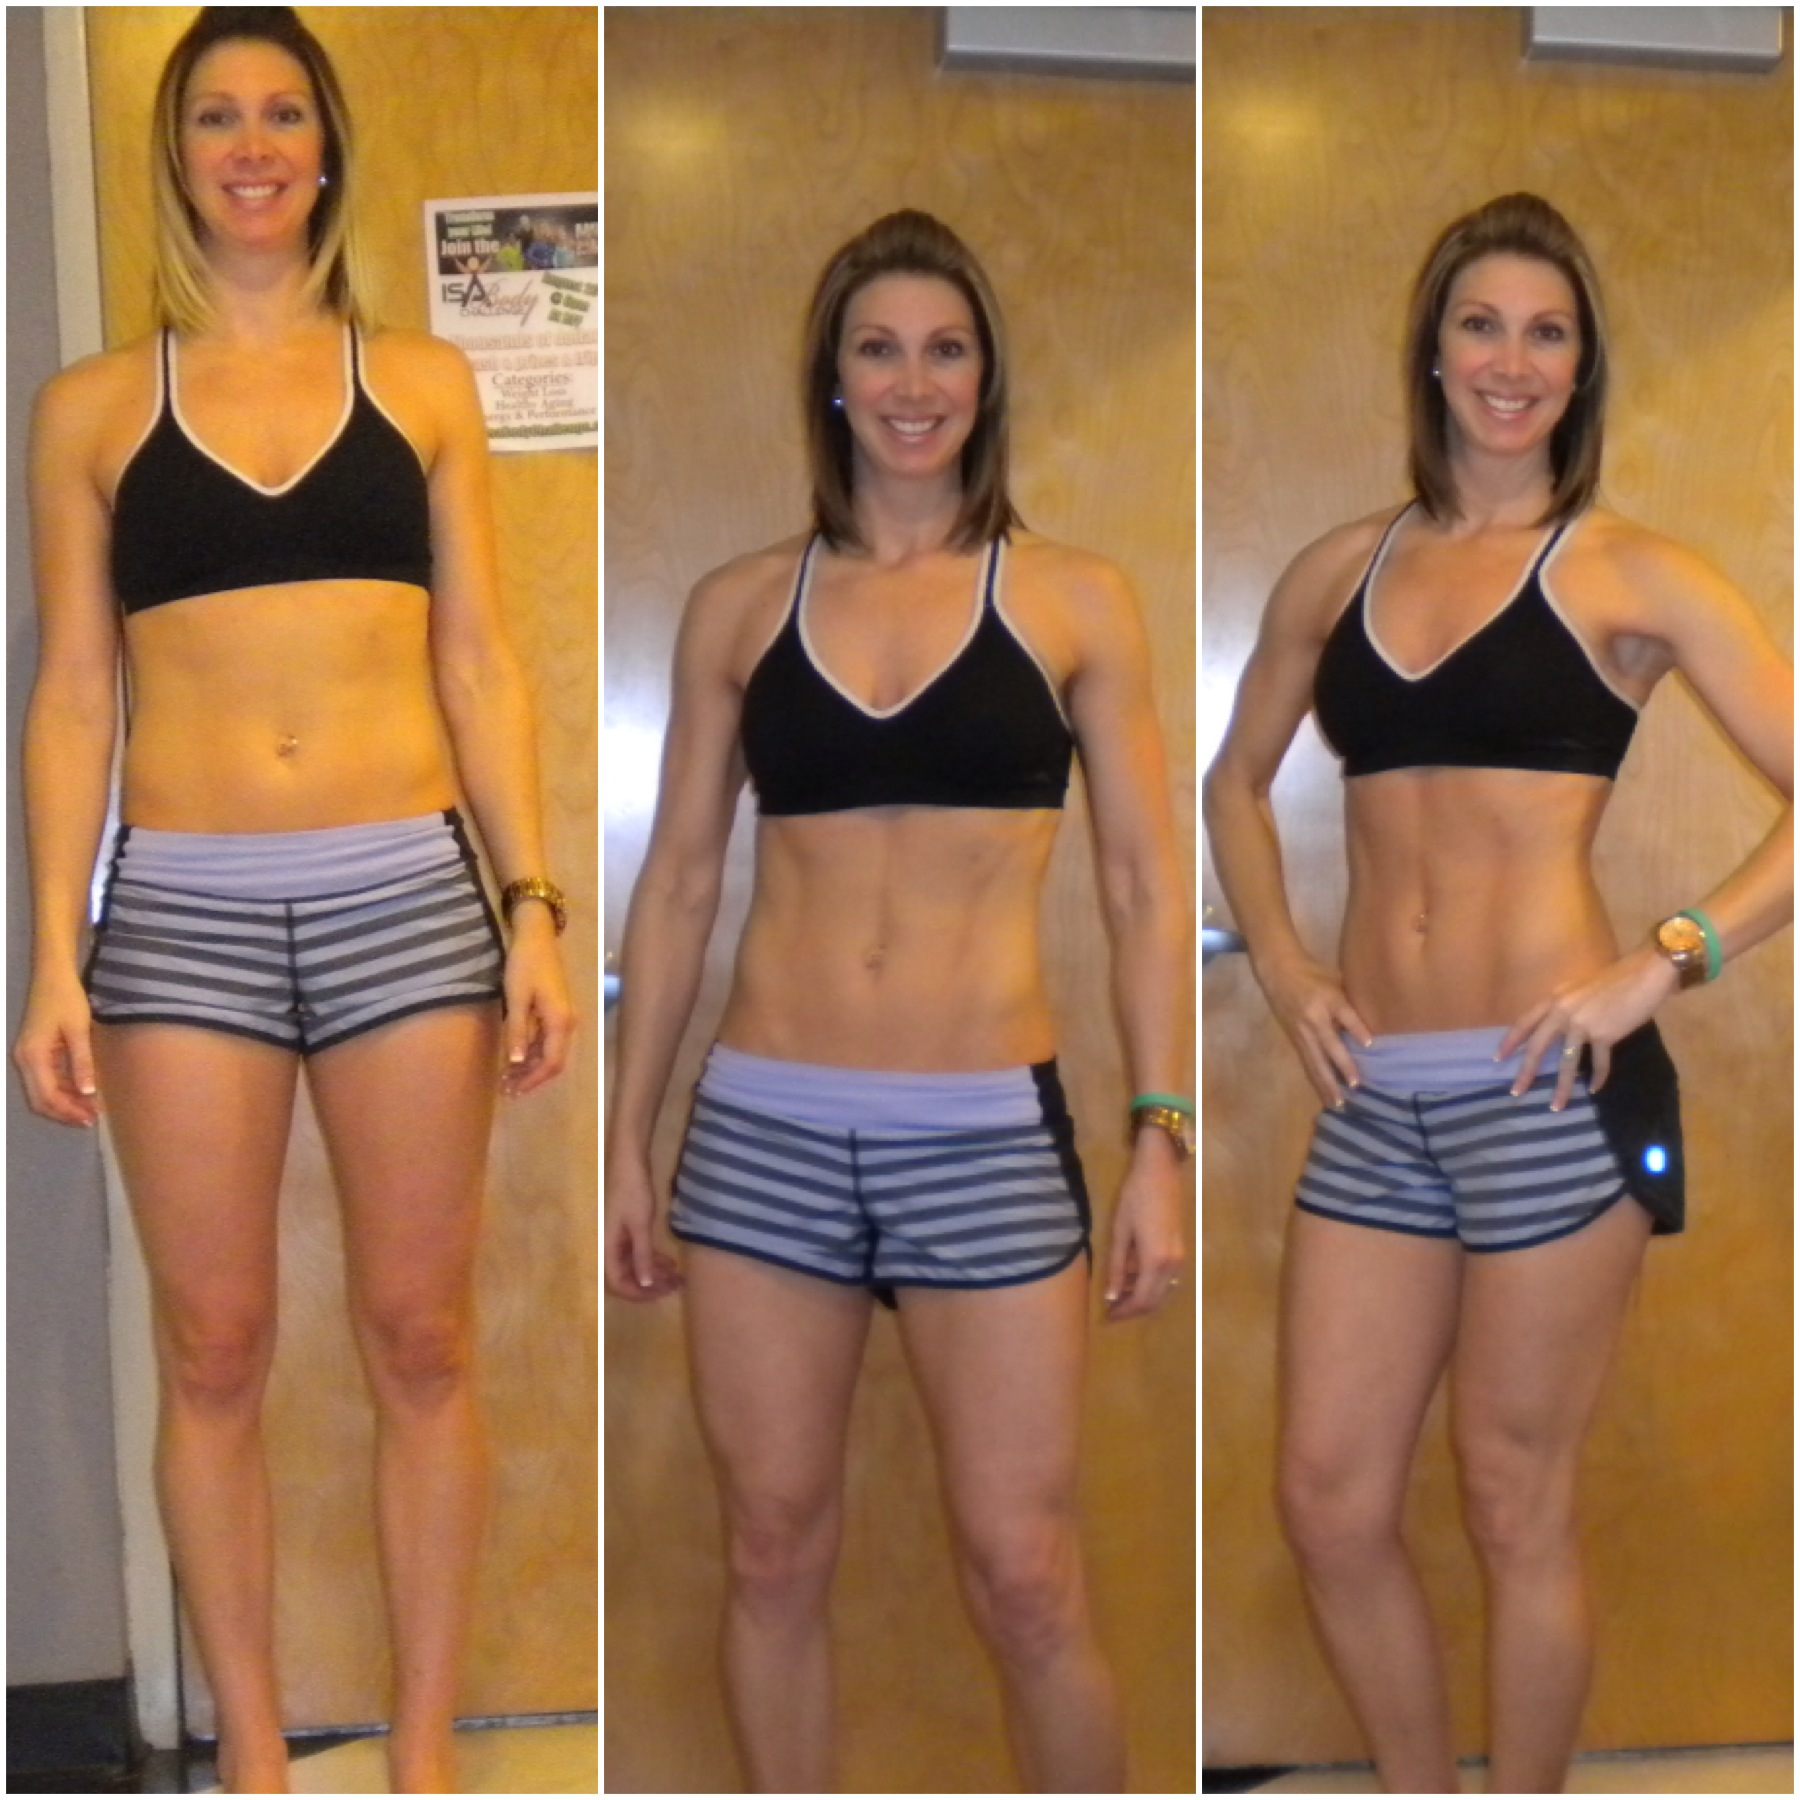 before and after photos of Charity who used Isagenix Cleansing System